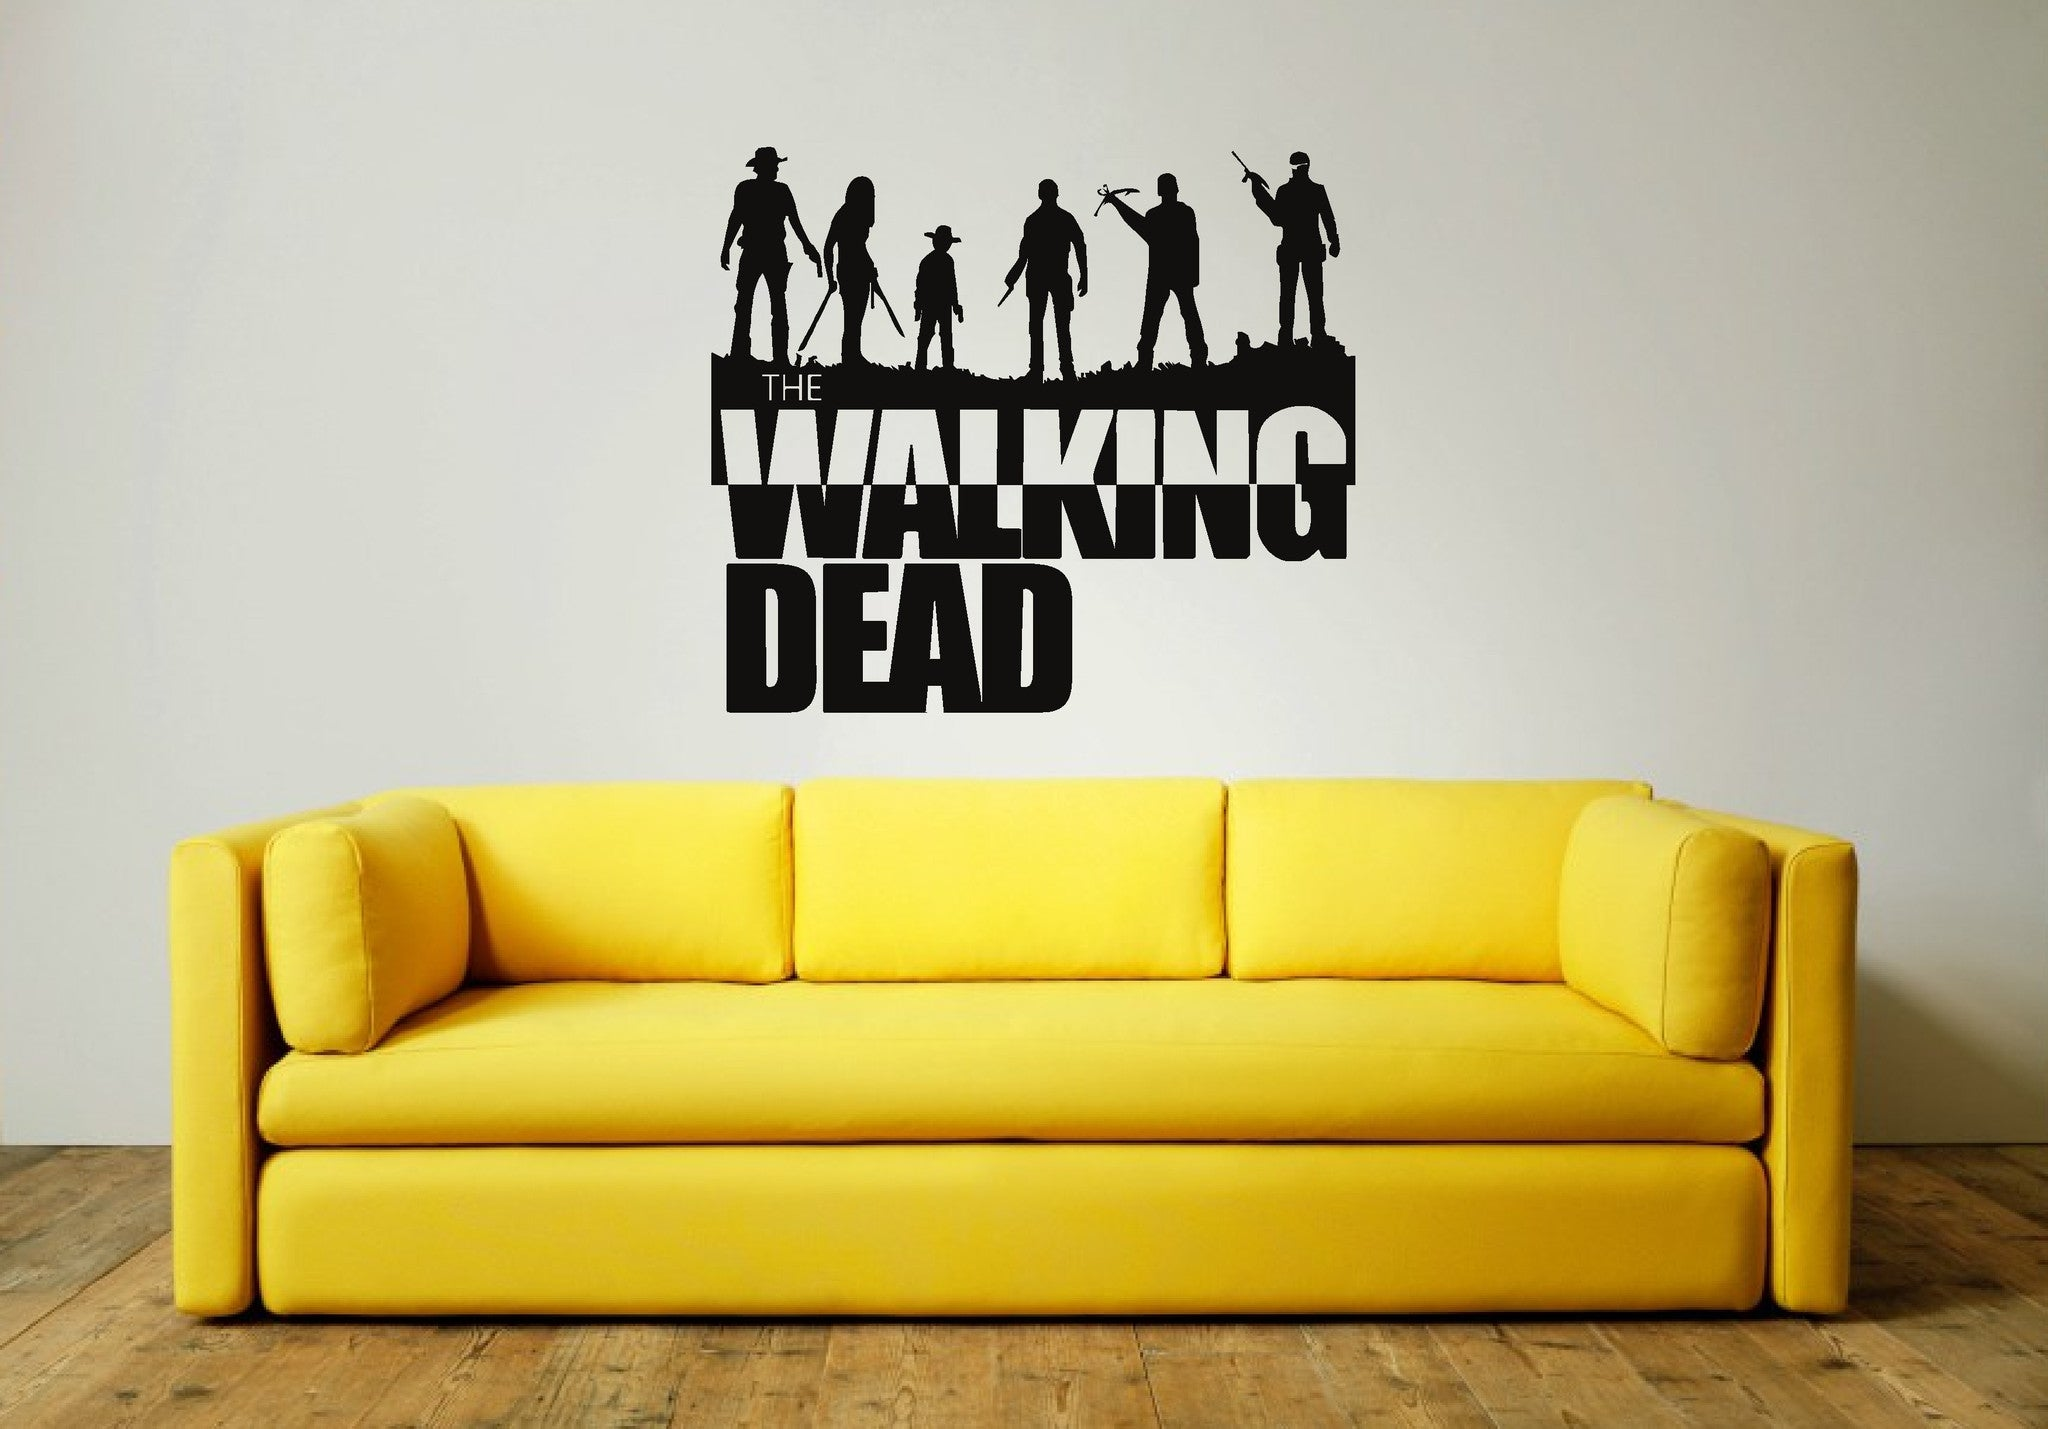 WALKING DEAD GROUP Wall Art Sticker (includes text) – Wall Art Shop